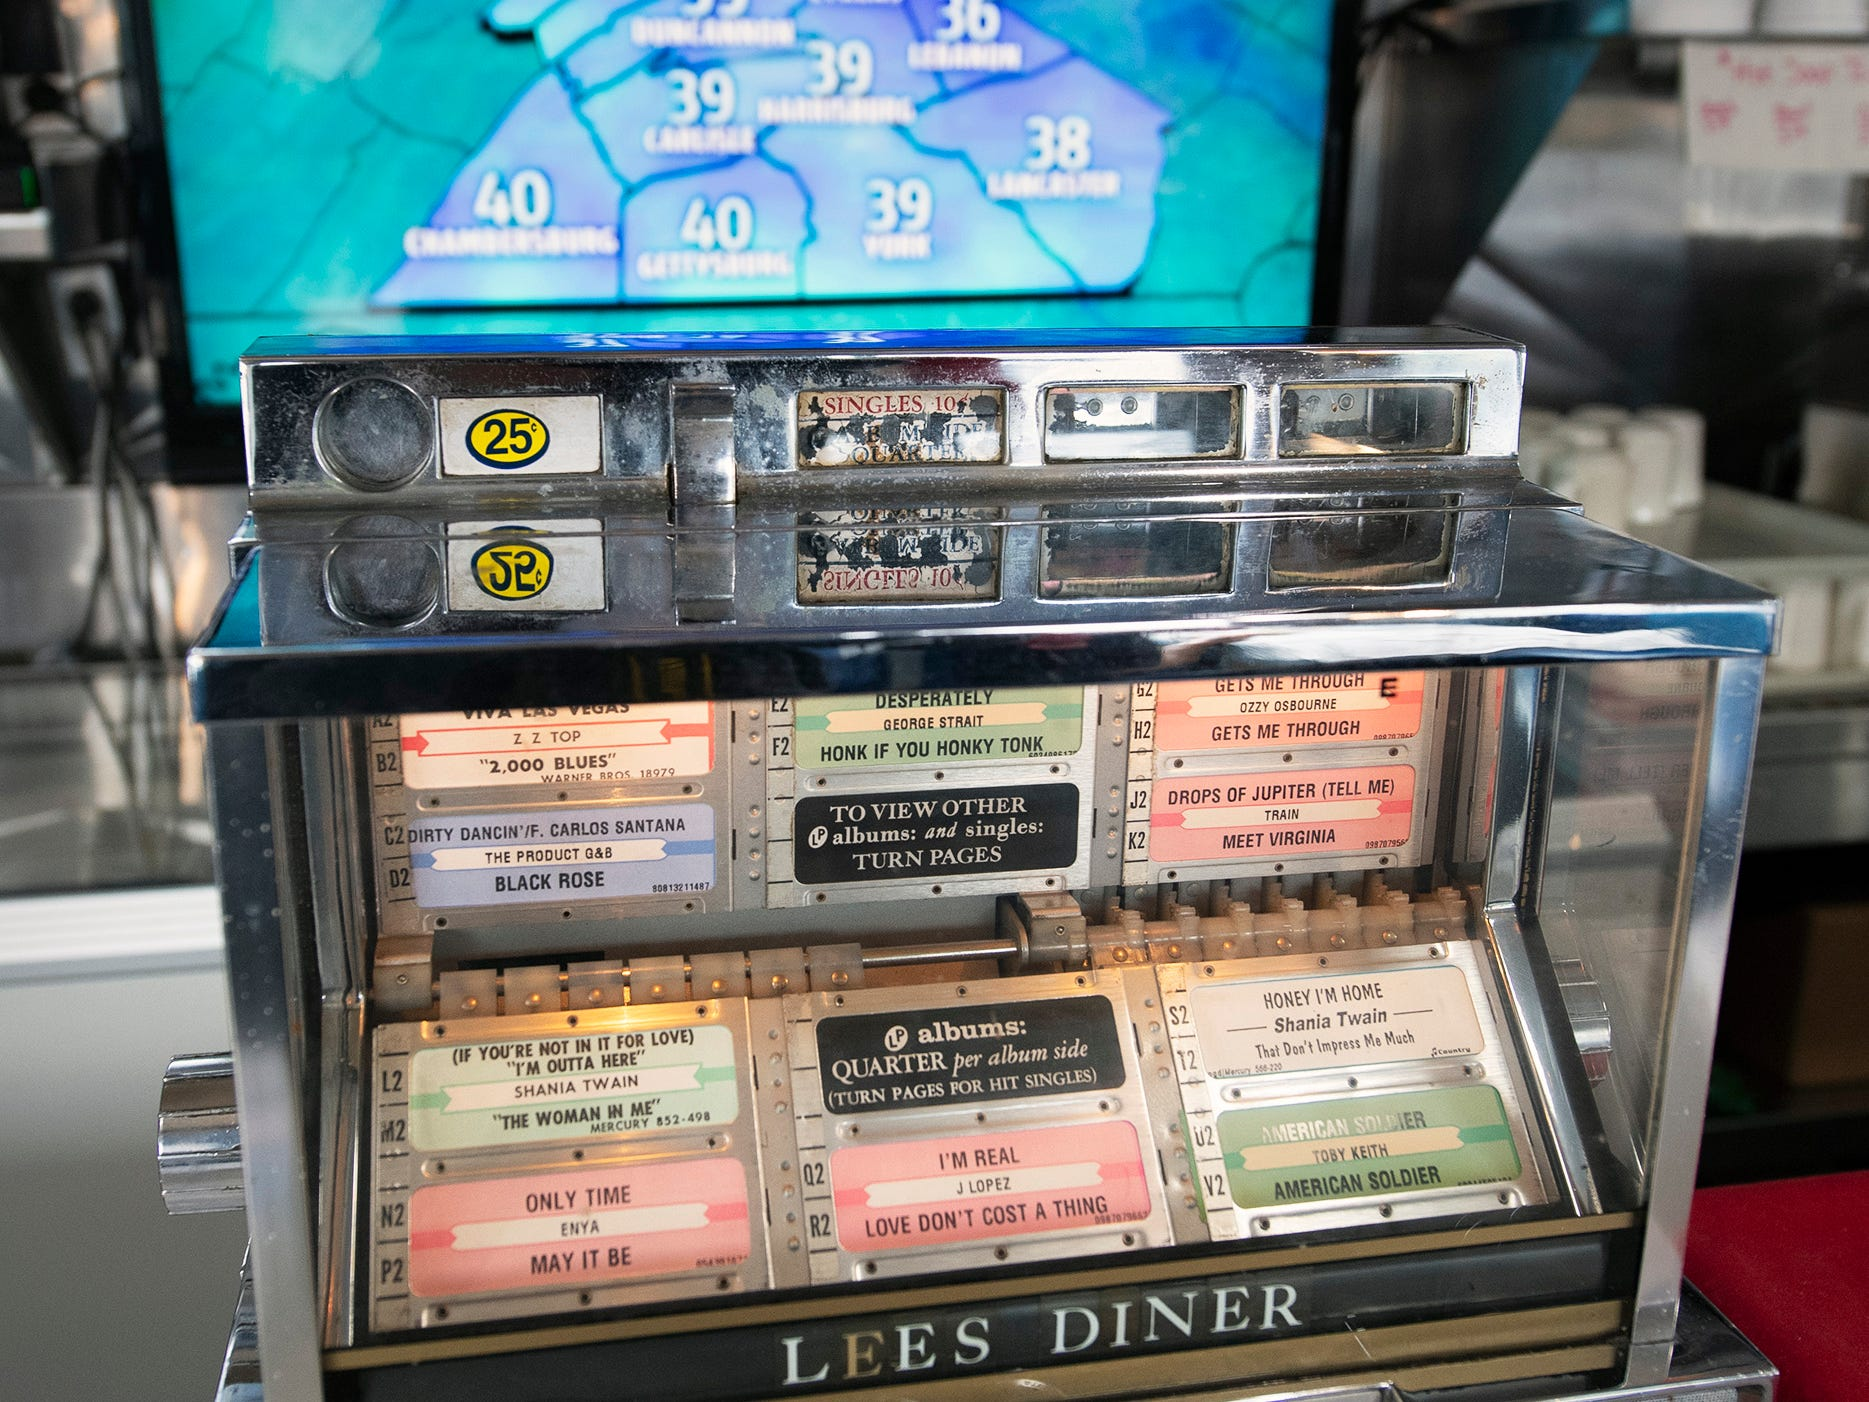 There are new televisions over the front counter, but the familiar juke boxes remain at the former Lee's Diner, now named Vicky's Diner.